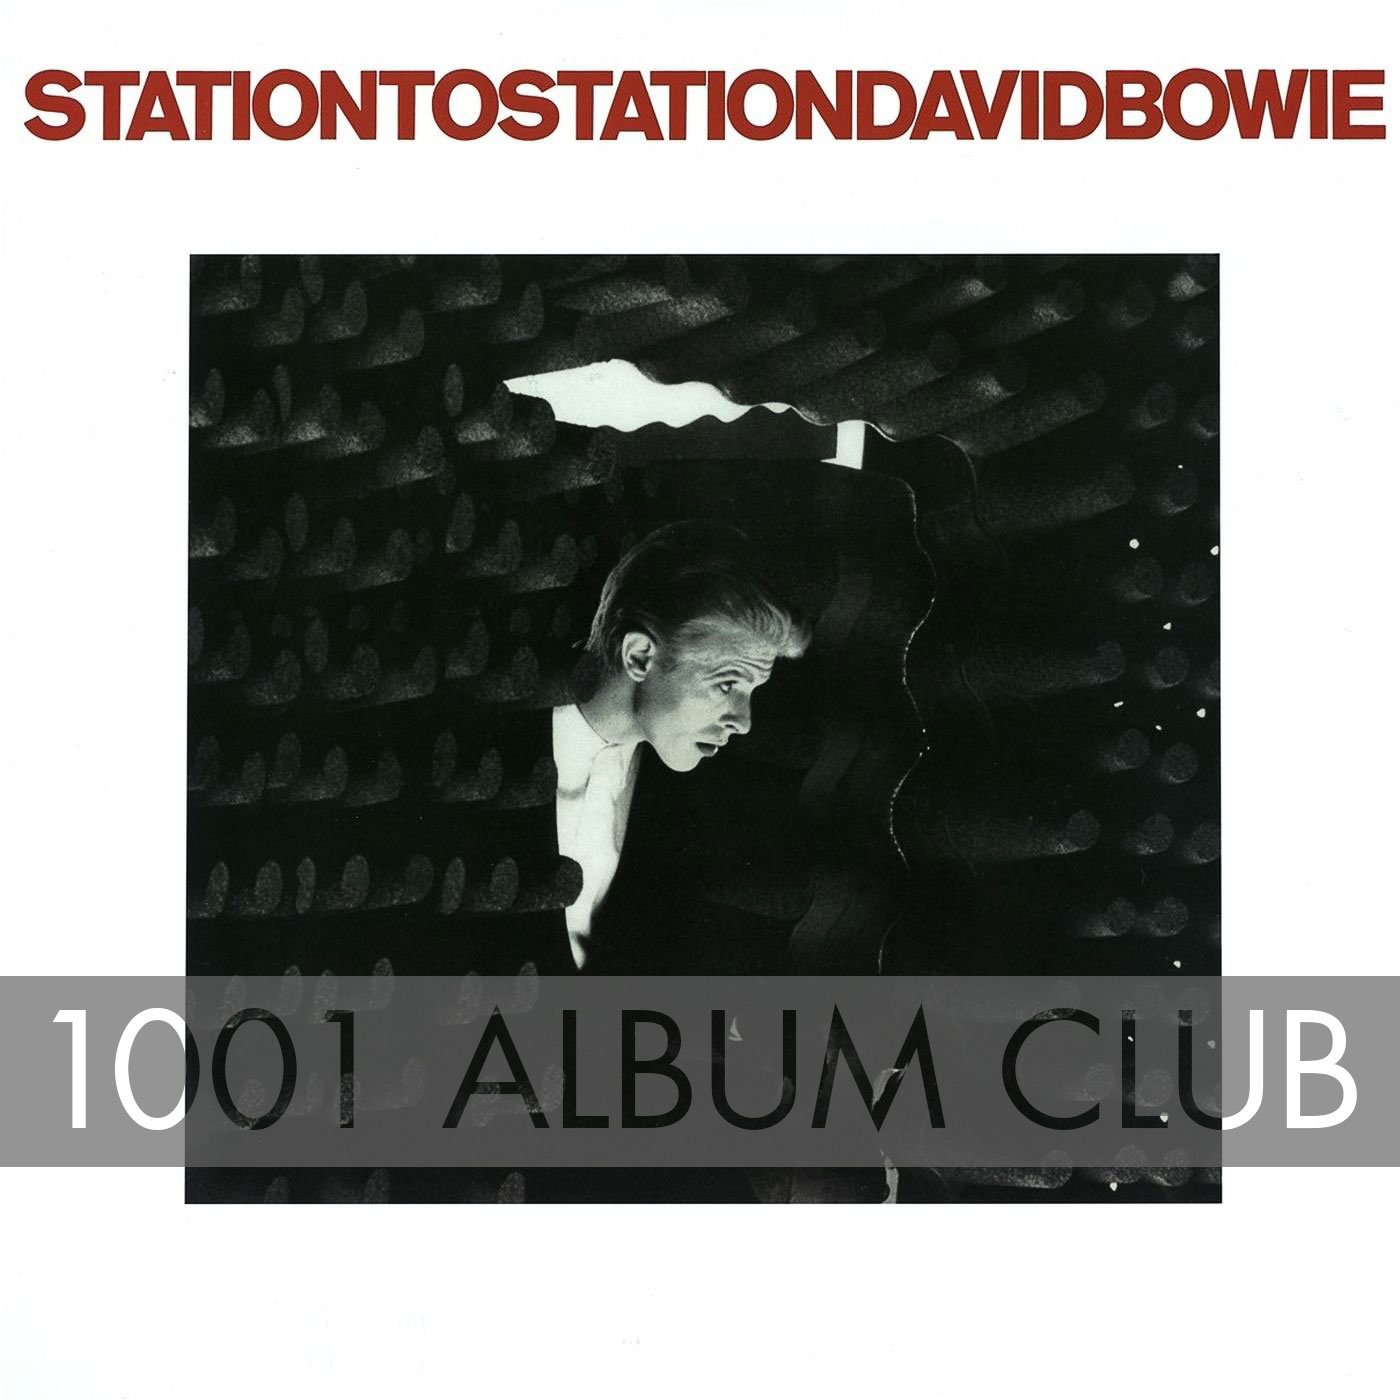 351 David Bowie - Station to Station